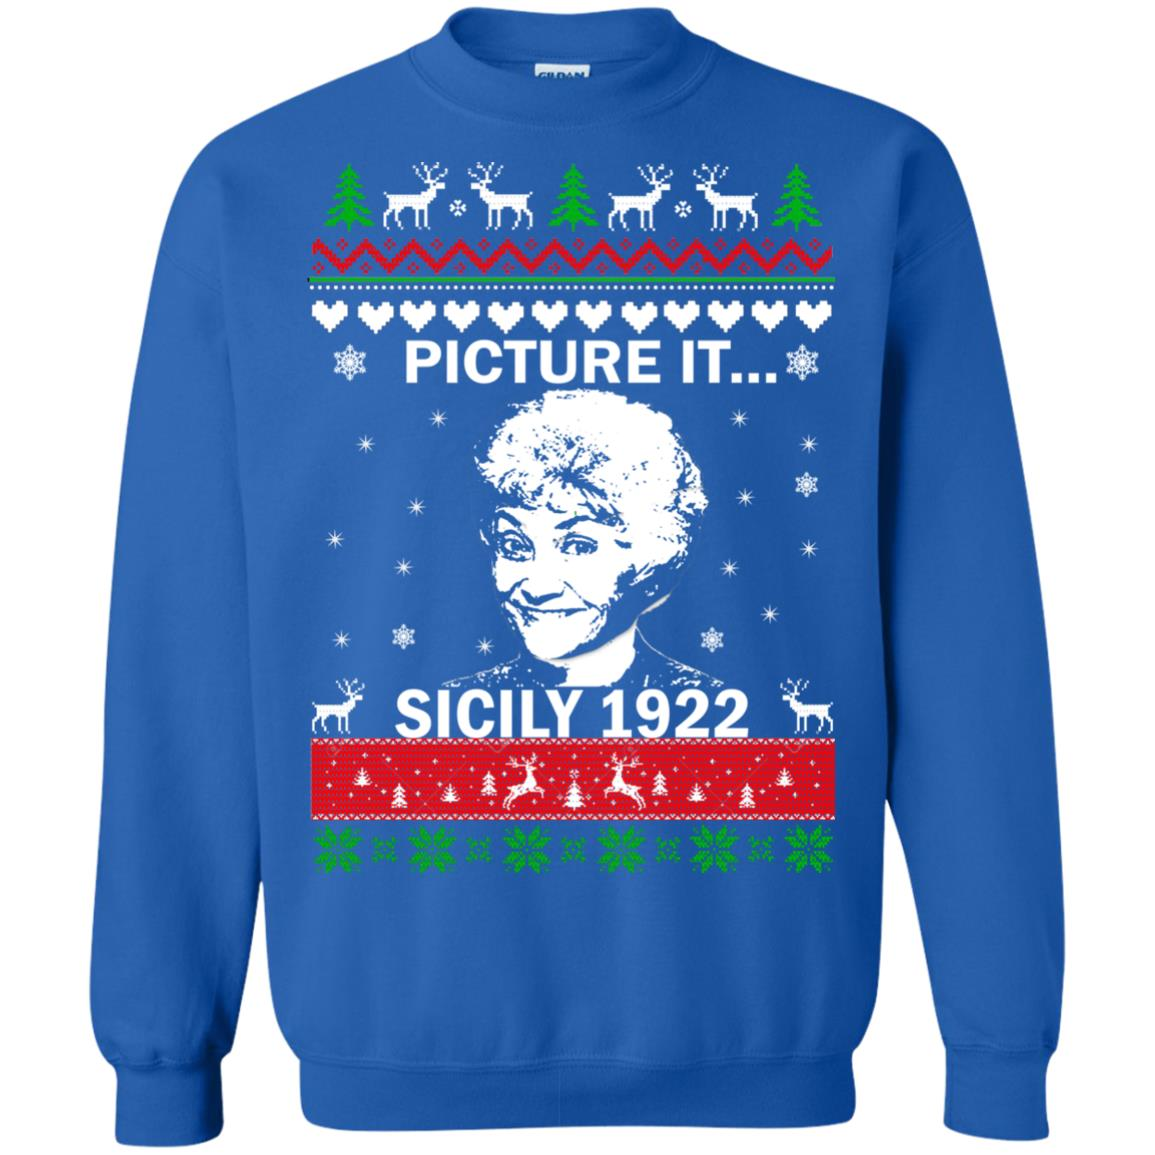 image 721 - Sophia: Picture it! Sicily 1922 Christmas Sweater, Long Sleeve